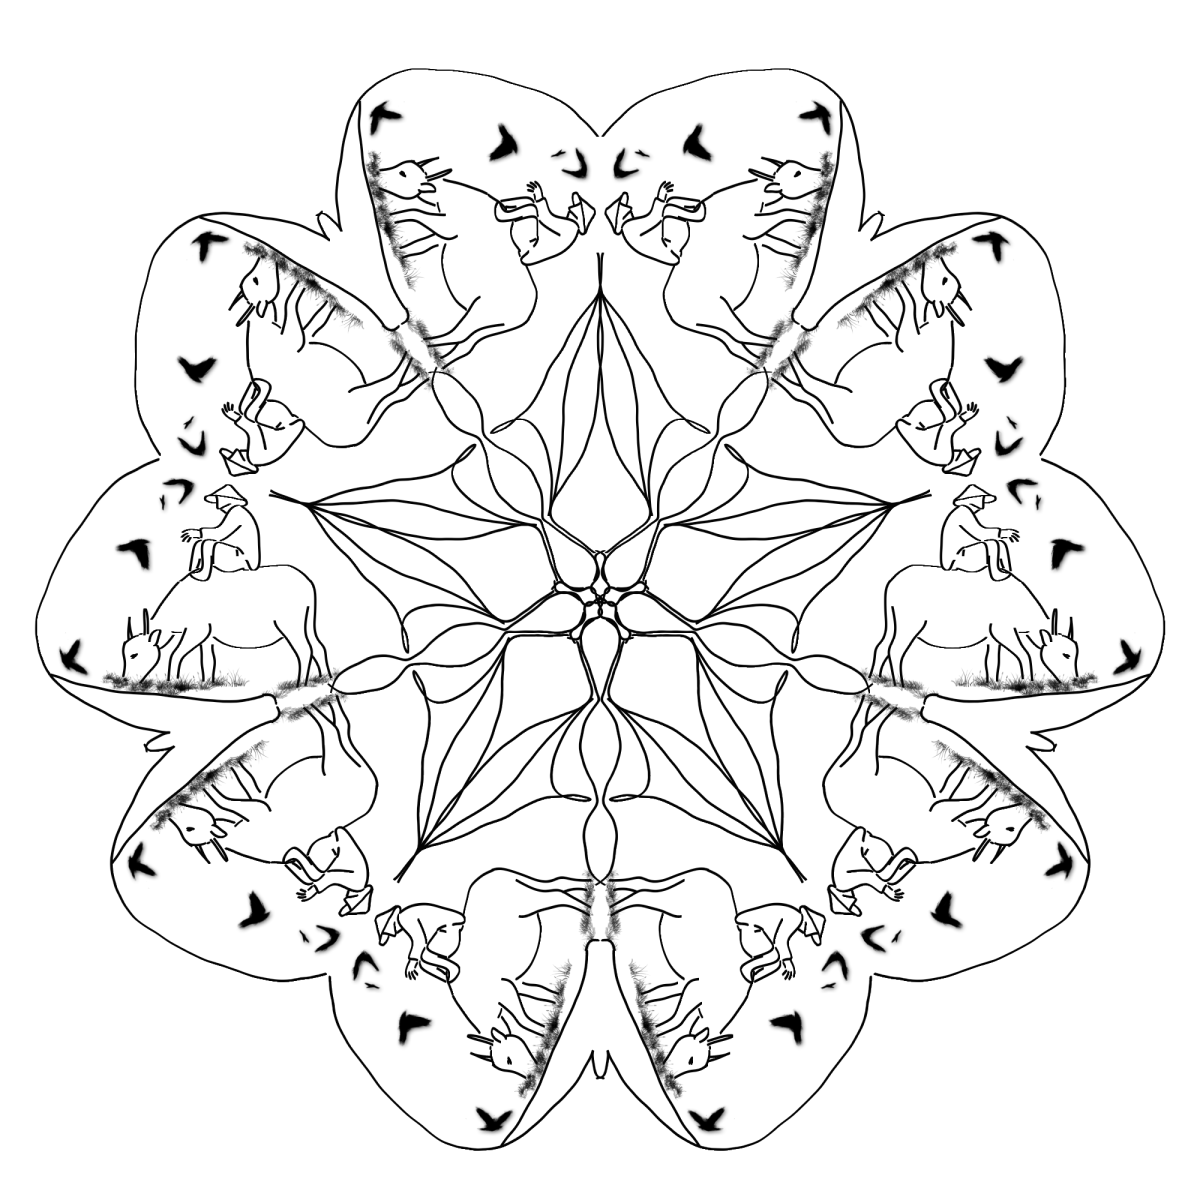 This adult coloring page features a person riding a water buffalo woven into a mandala design.